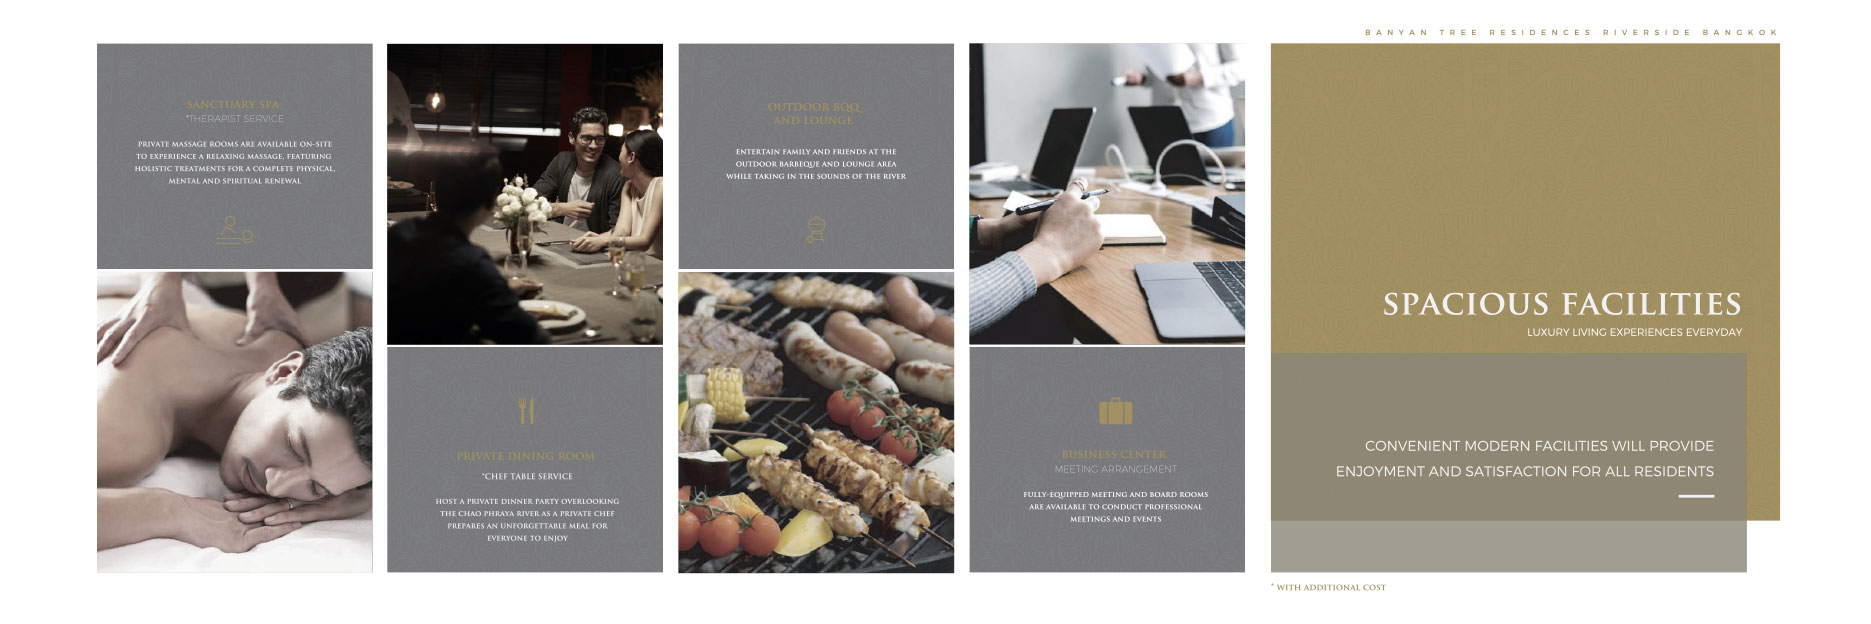 Banyan Tree Residences Riverside Bangkok Brochure 10